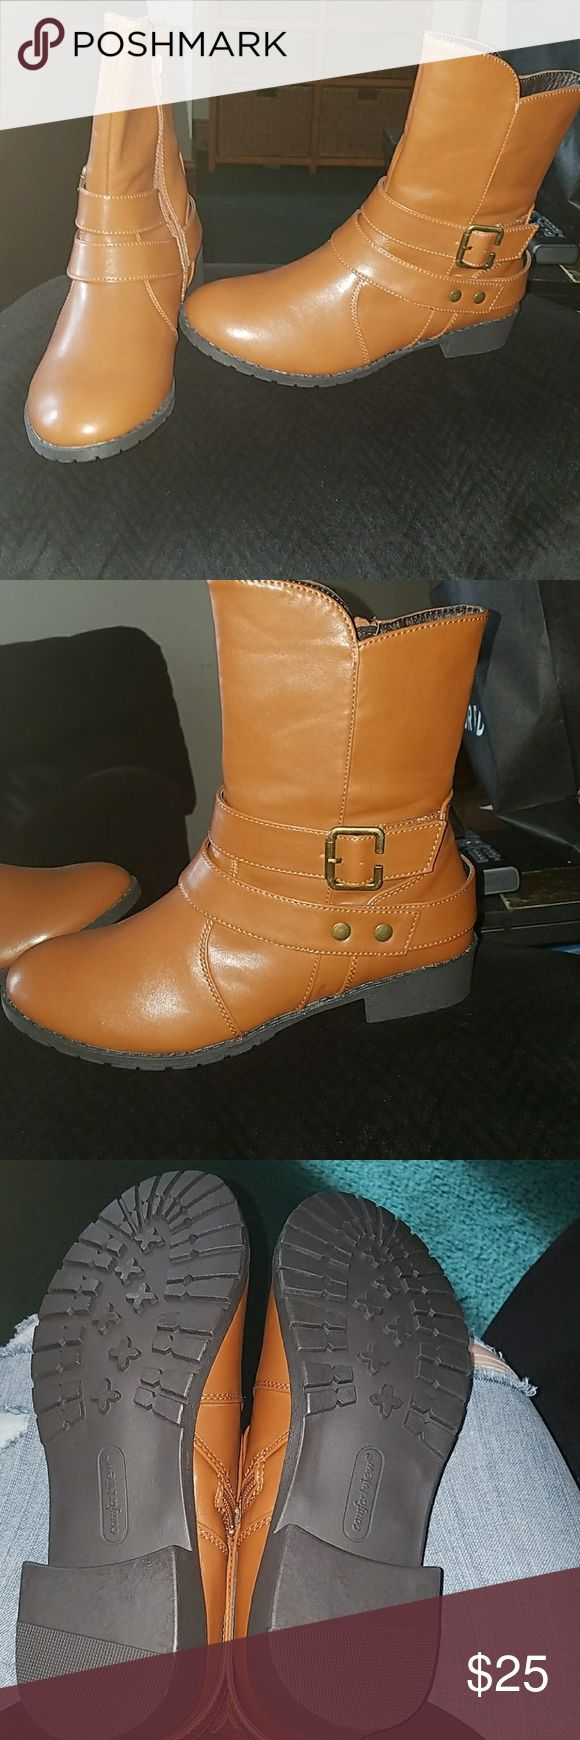 Comfortview tan boots 8.5 ww Brand new comfortview boots. Womens  8.5 ww, fit like a regular wide. Smoke free home comfortview Shoes Ankle Boots & Booties